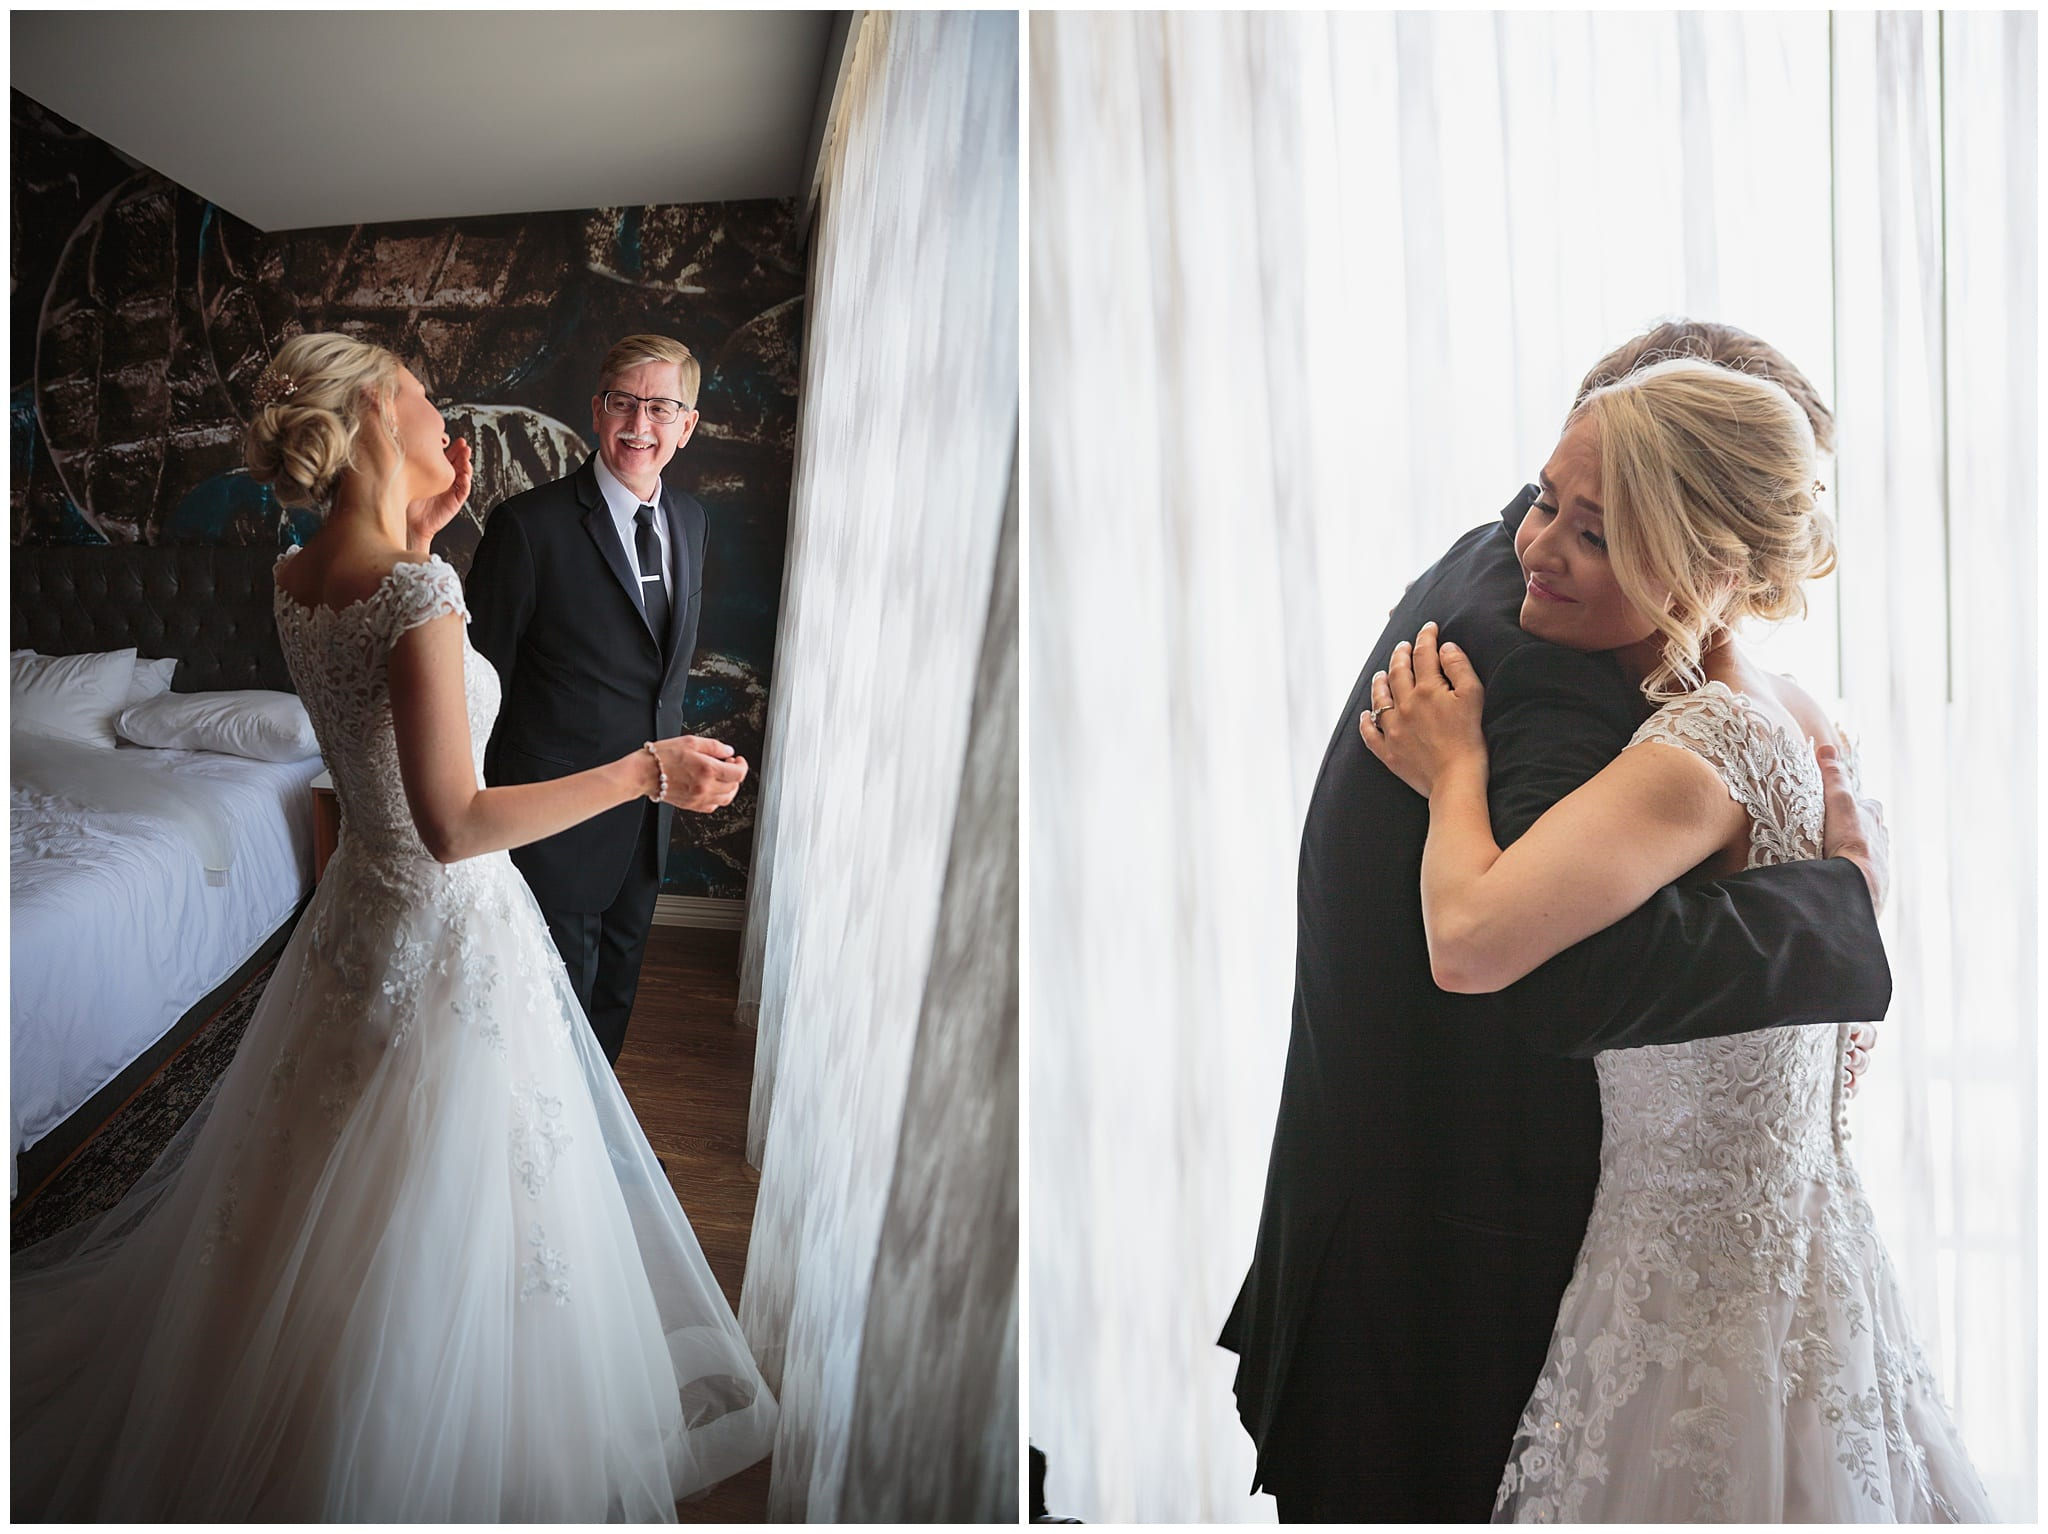 Father-Daughter First Look -Hotel Indigo Wedding - Wes Craft Photography